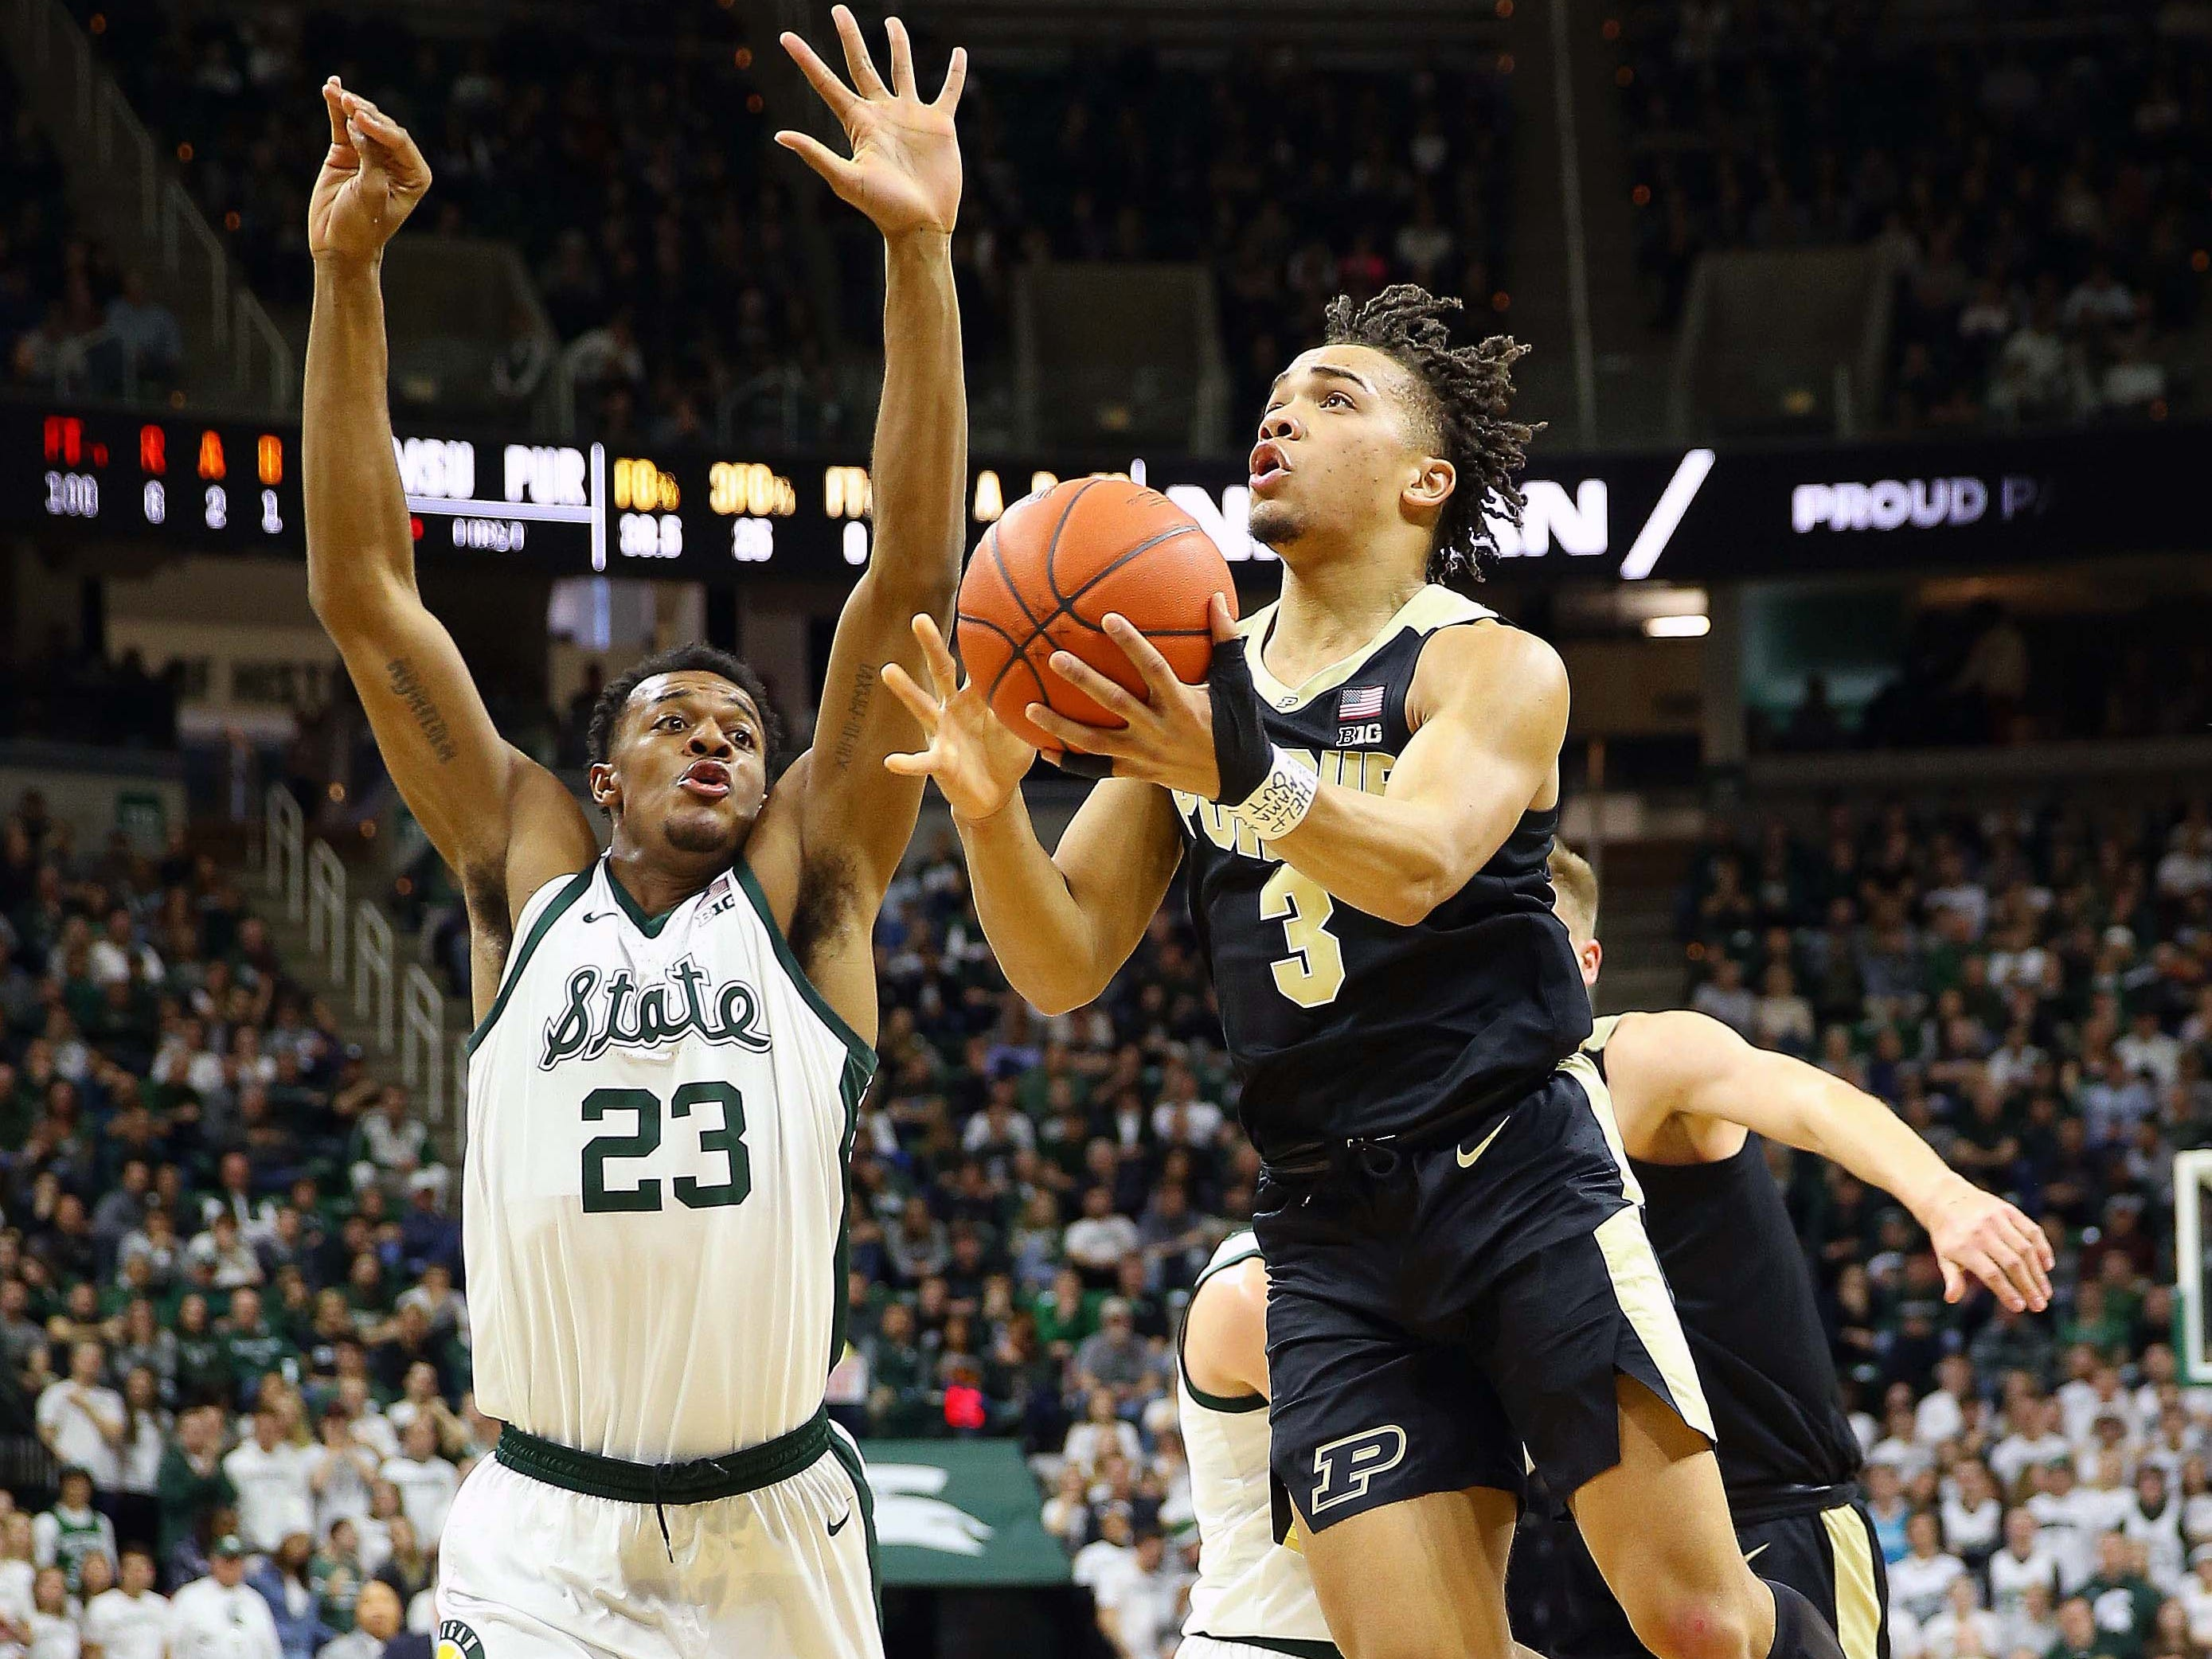 Purdue Boilermakers guard Carsen Edwards (3) drives the lane in front of Michigan State Spartans forward Xavier Tillman (23) during the first half of a game at the Breslin Center.